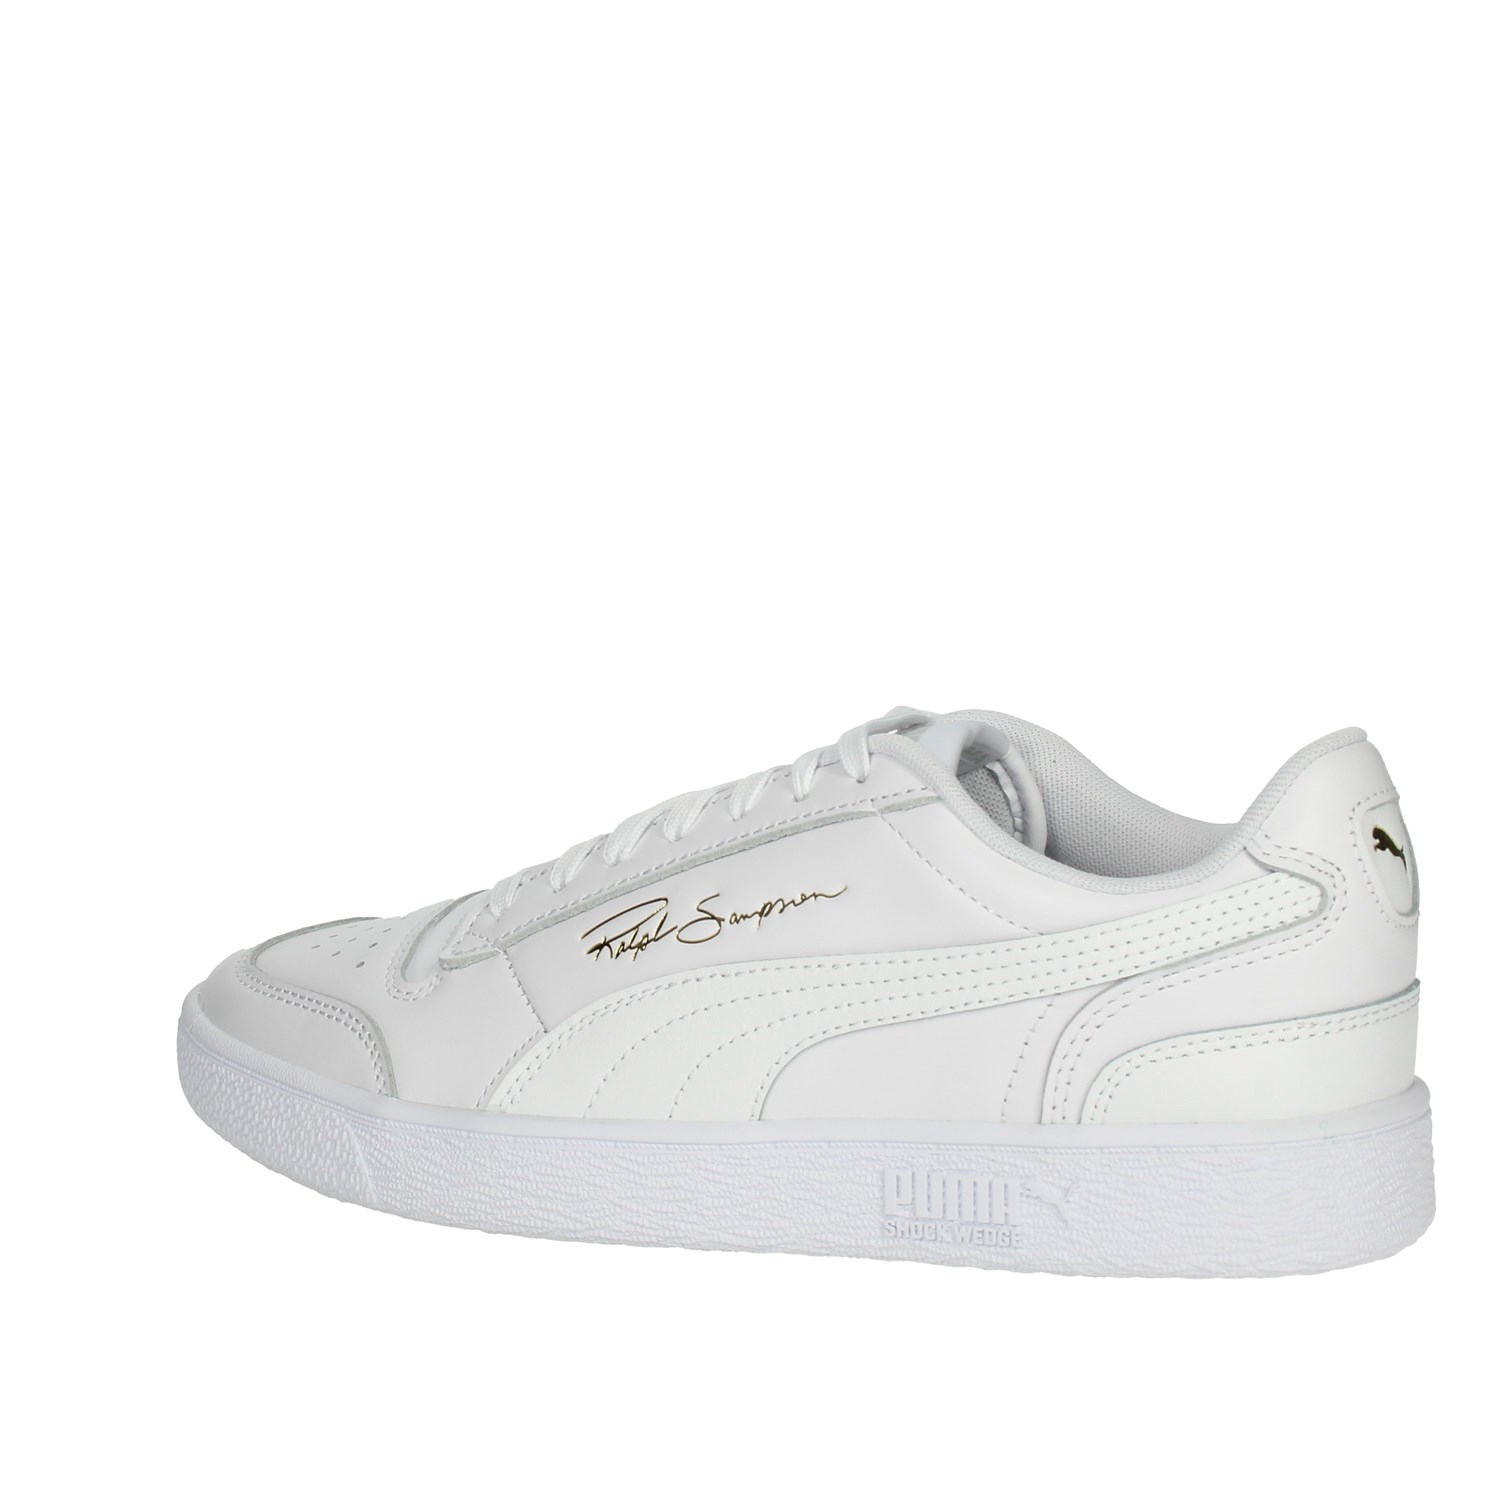 Skechers Uomo 52676 BIANCO Sneakers AutunnoInverno Pelle